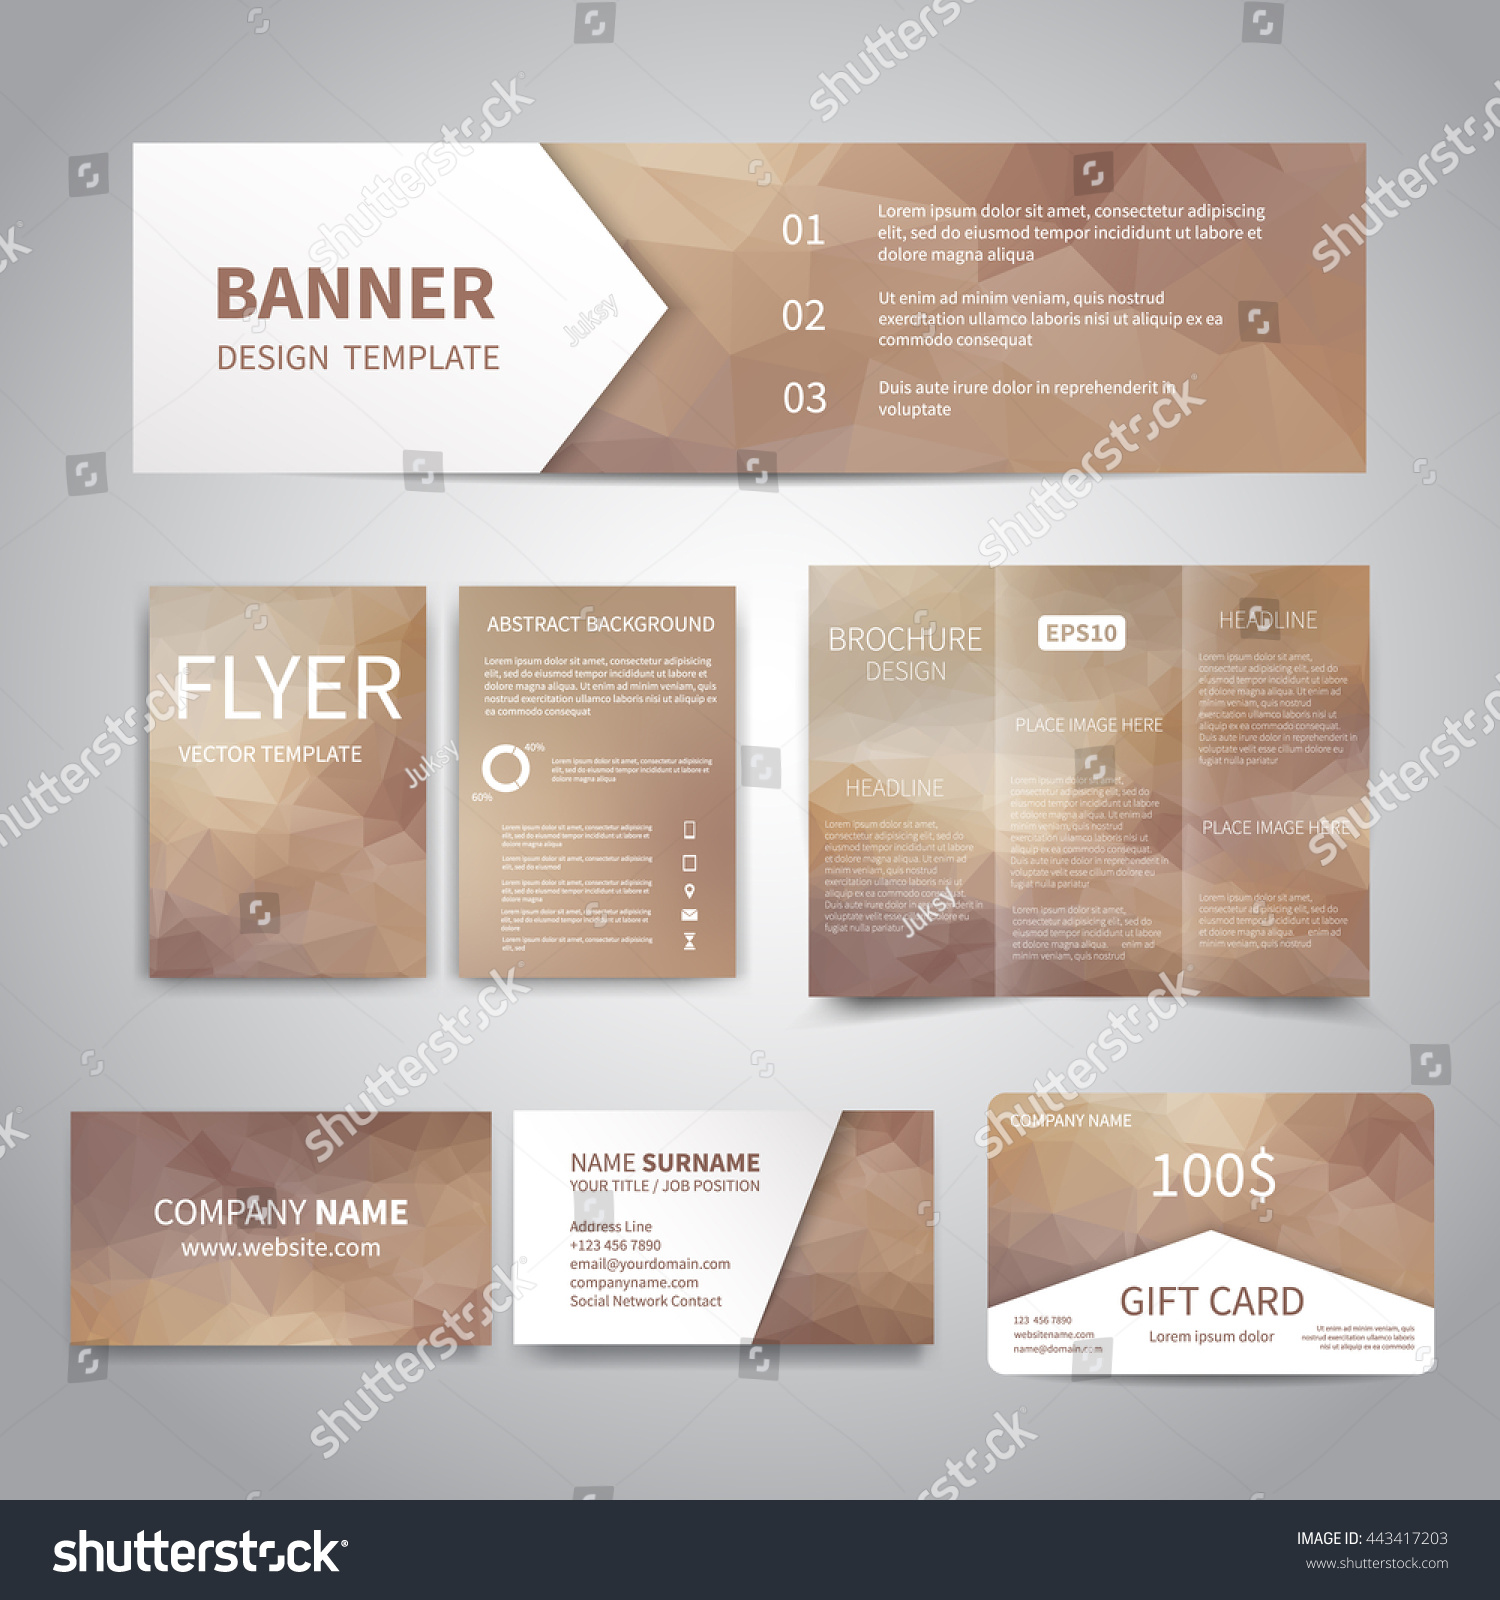 Flyers and business cards printing images free business cards banner flyers brochure business cards gift stock vector 443417203 banner flyers brochure business cards gift card magicingreecefo Image collections